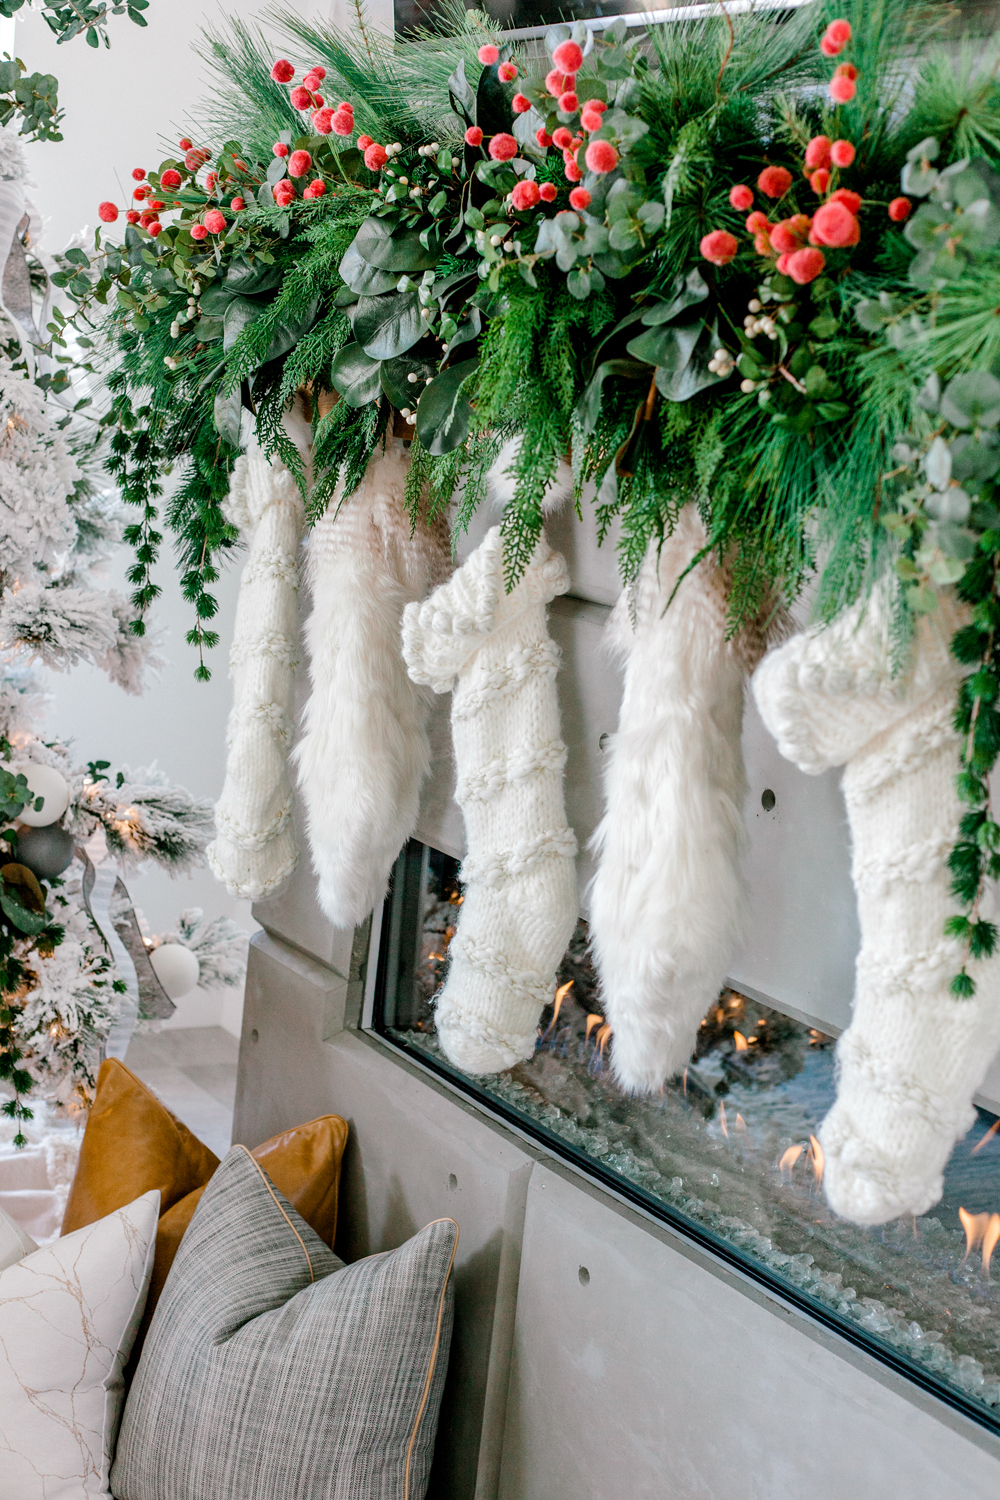 Kailee Wright Chirstmas decorations anthropologie stockings